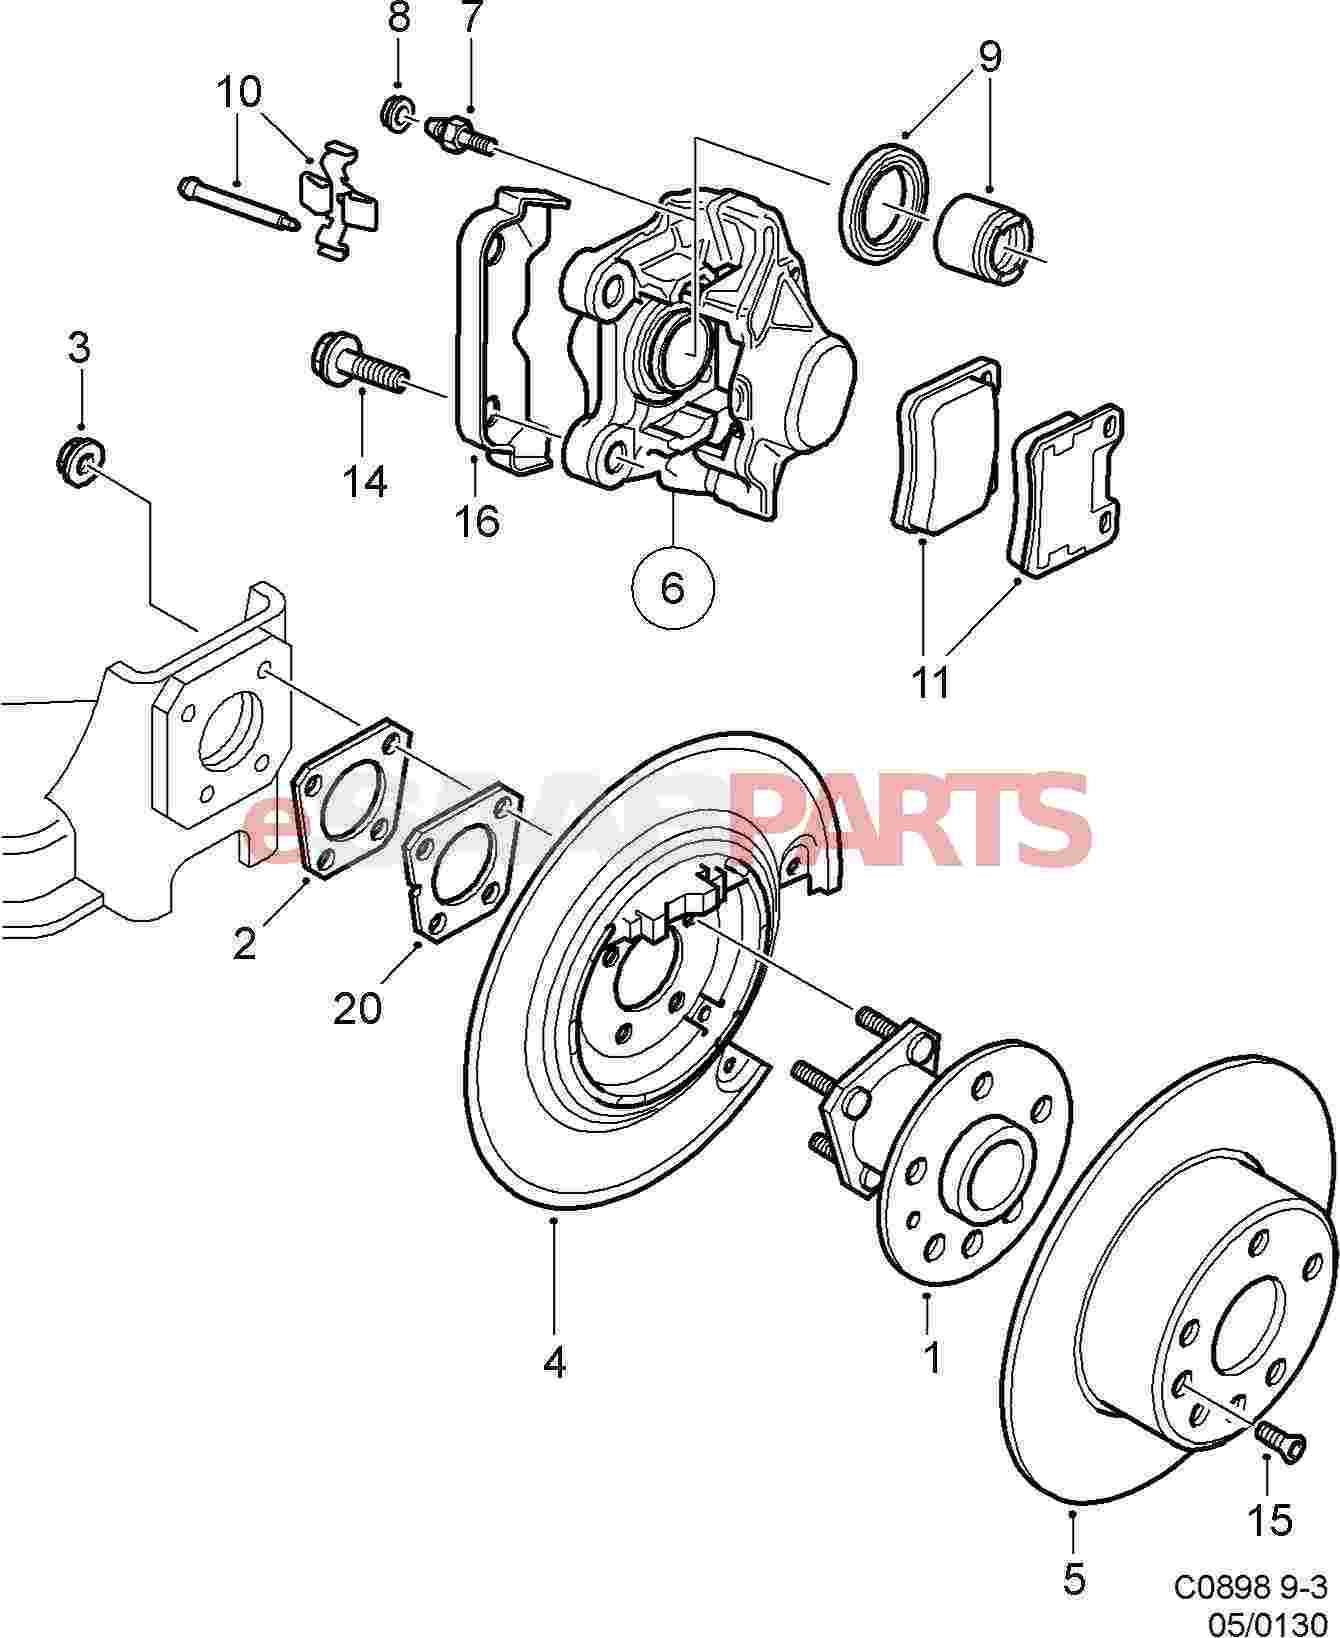 saab brakes diagram 4 1 artatec automobile de \u2022saab brakes diagram wiring library rh ggve nl brake parts brake pad diagram